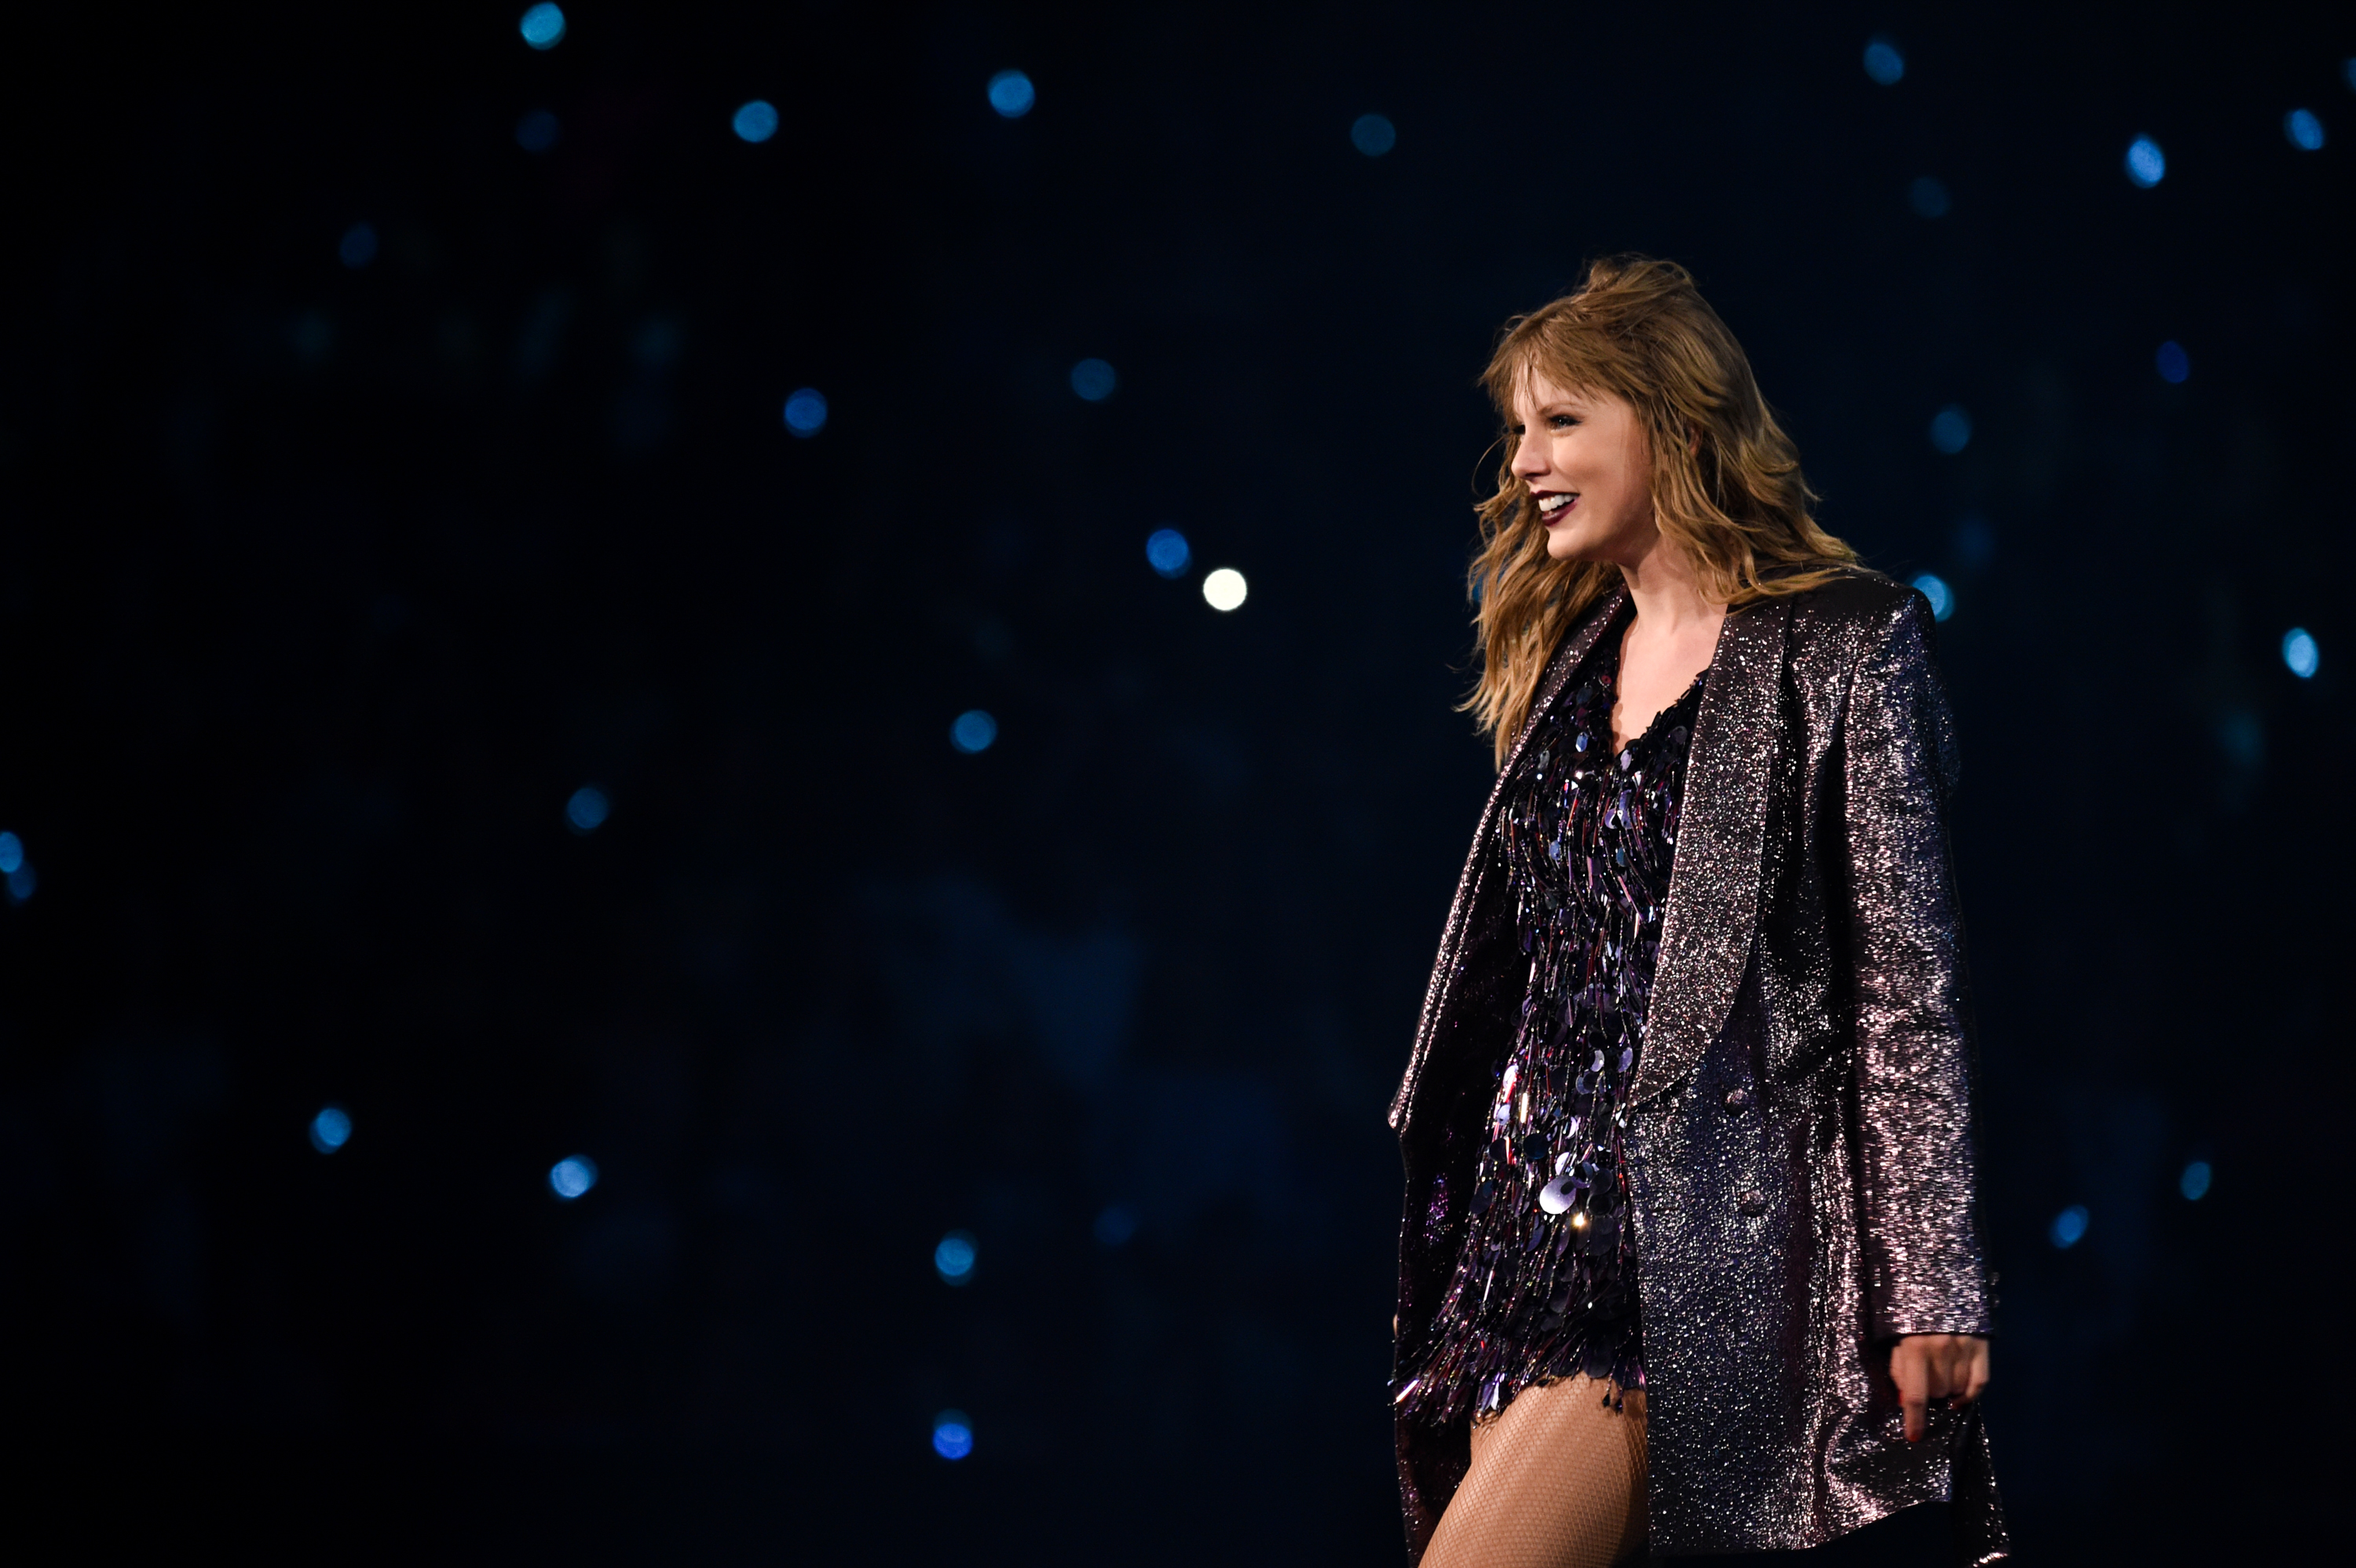 Taylor Swift performs onstage during the Taylor Swift reputation Stadium Tour at Mercedes-Benz Stadium on August 11, 2018 in Atlanta, Georgia.  (Photo by John Shearer/TAS18/Getty Images for TAS)